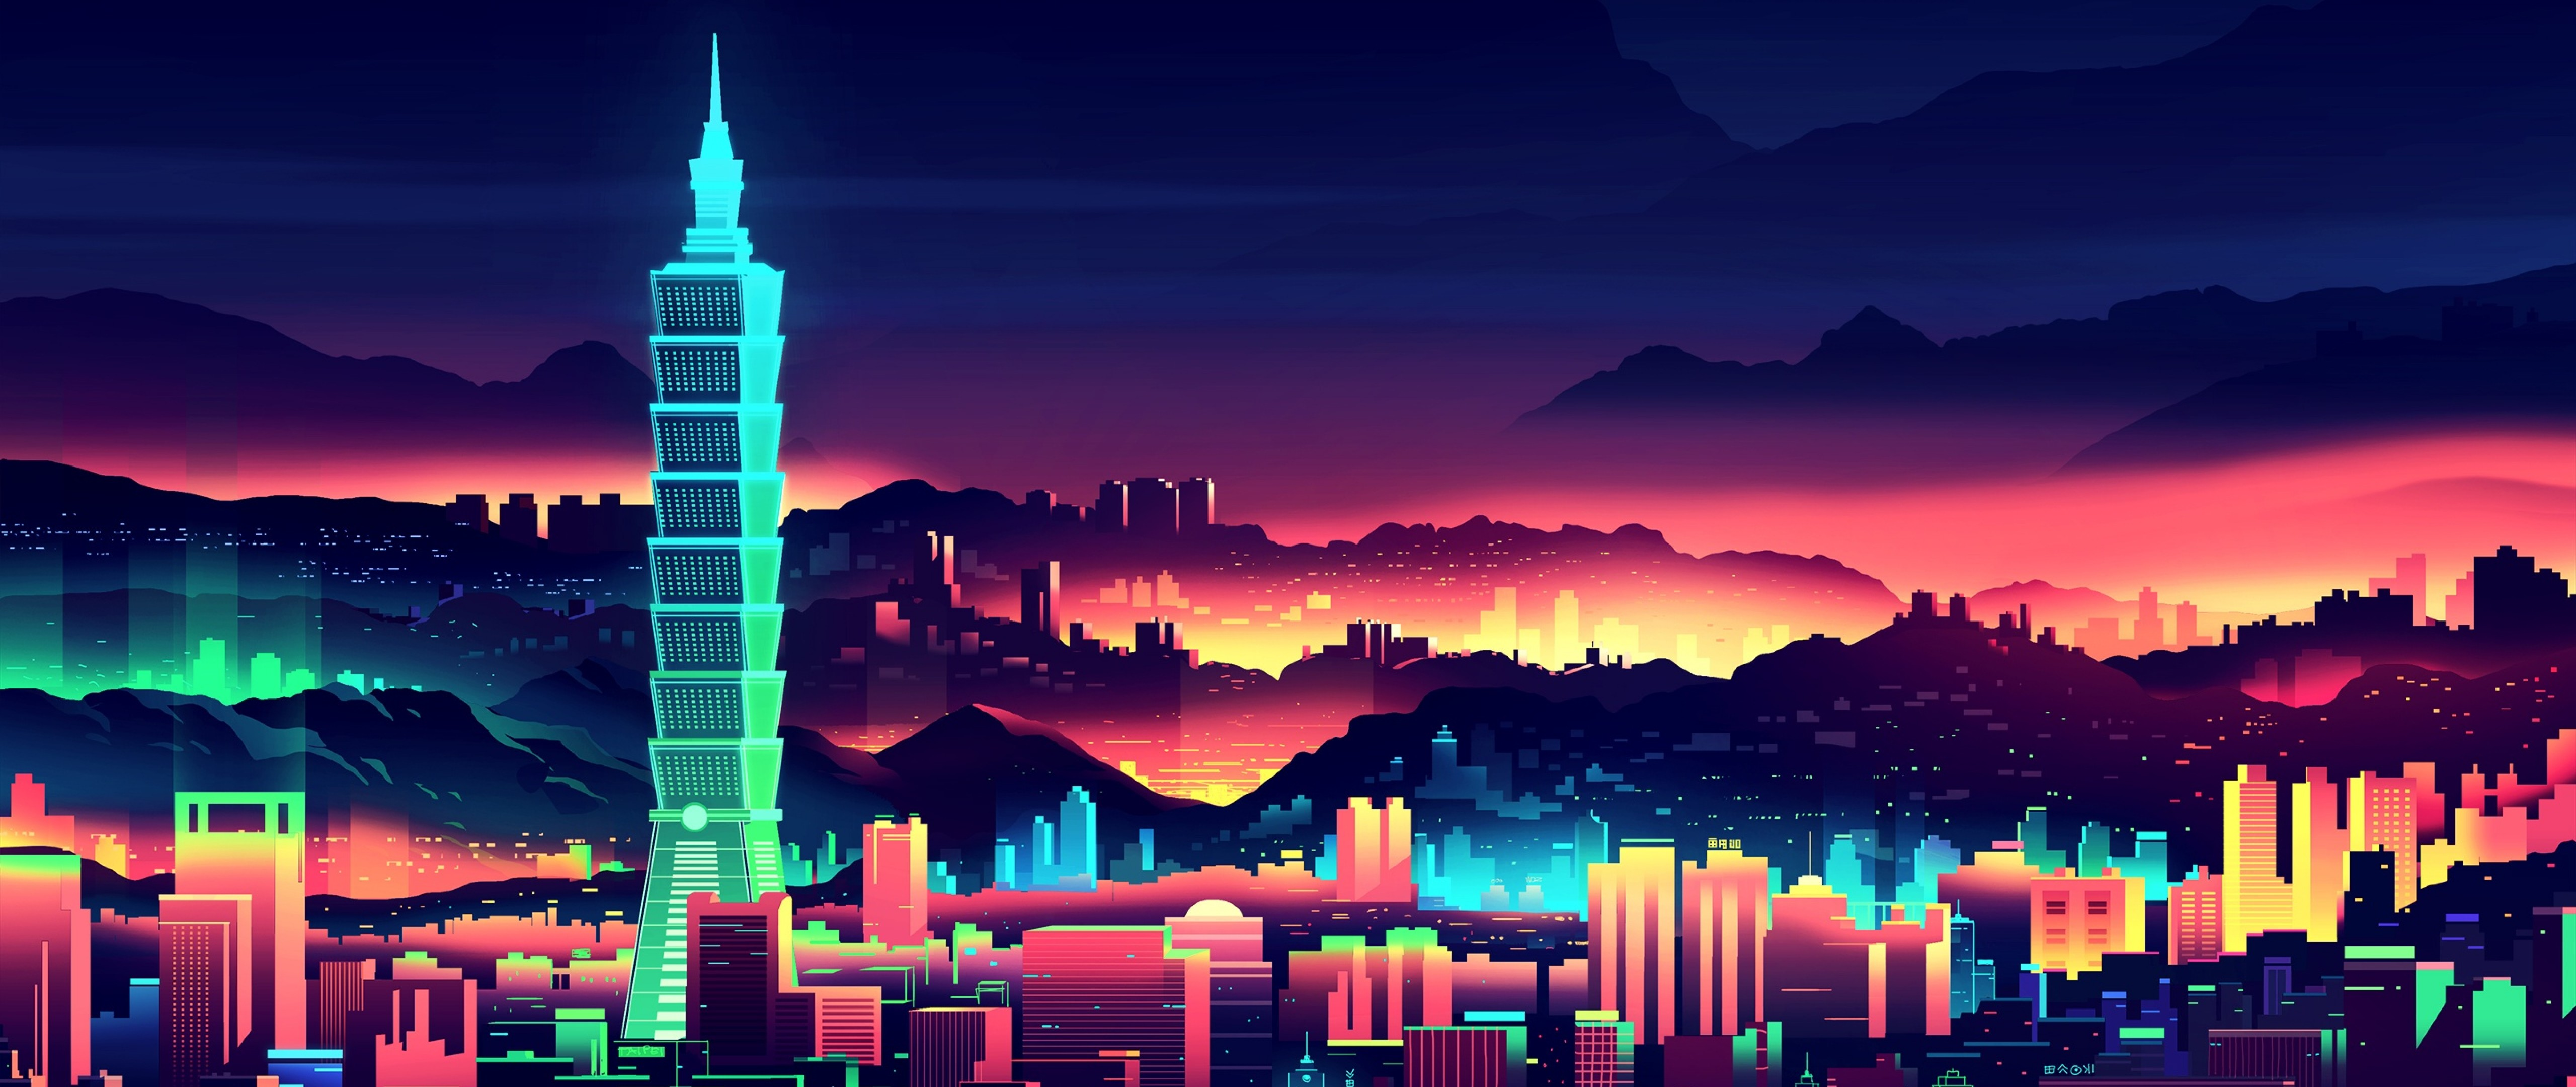 Neon City Wallpaper for Desktop and Mobiles 4K Ultra HD ...